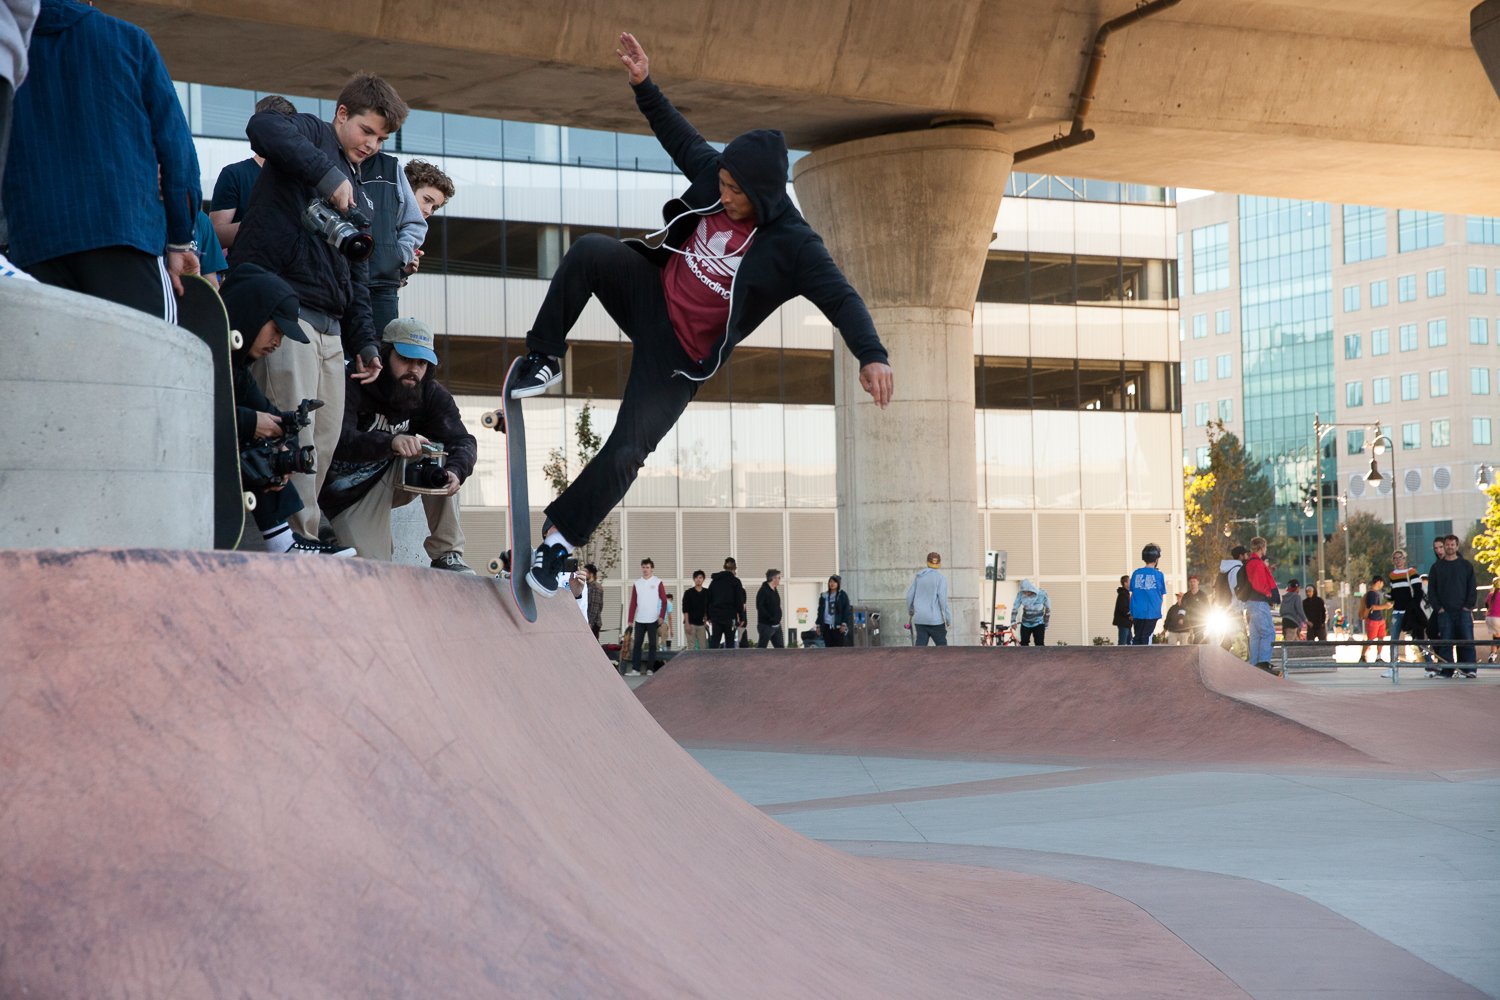 Daewon did all kinds of mind-blowing lip tricks on this thing.